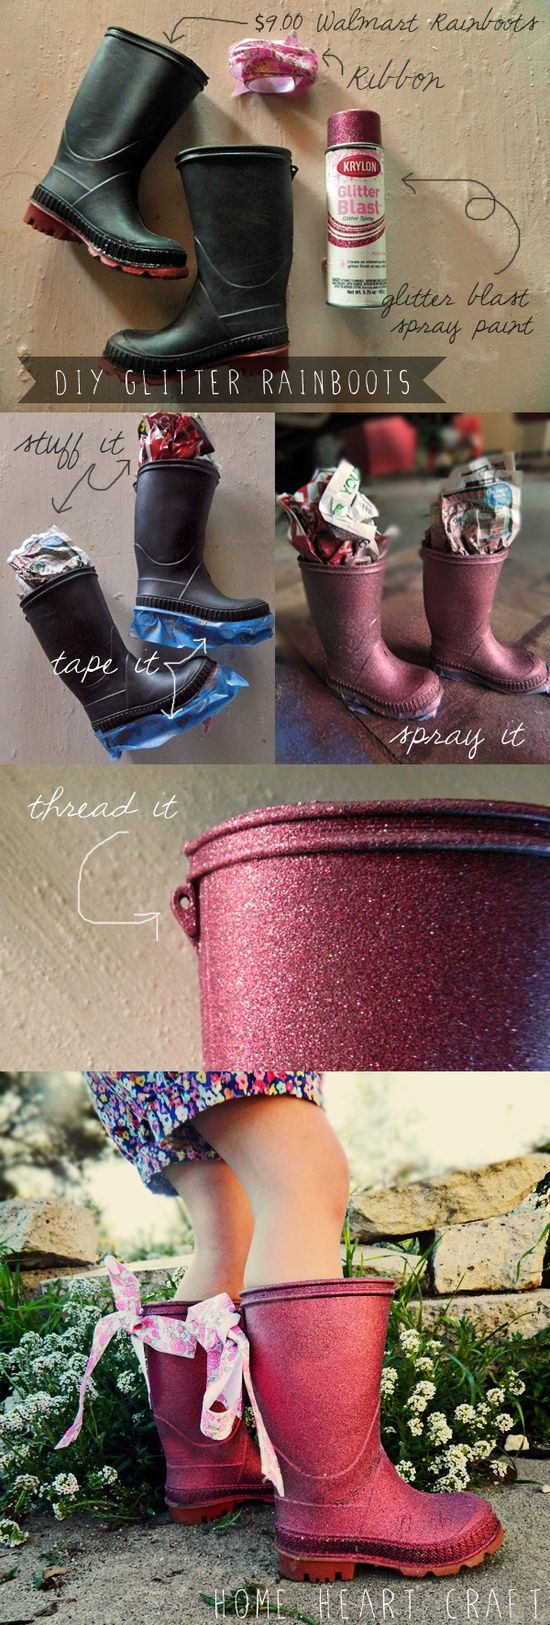 DIY Glitter Rainboots  SP- I am going to test this- does the paint crack? BLUE GLITTER rainboots would be adorable, and I do not have enough adorable adornment.